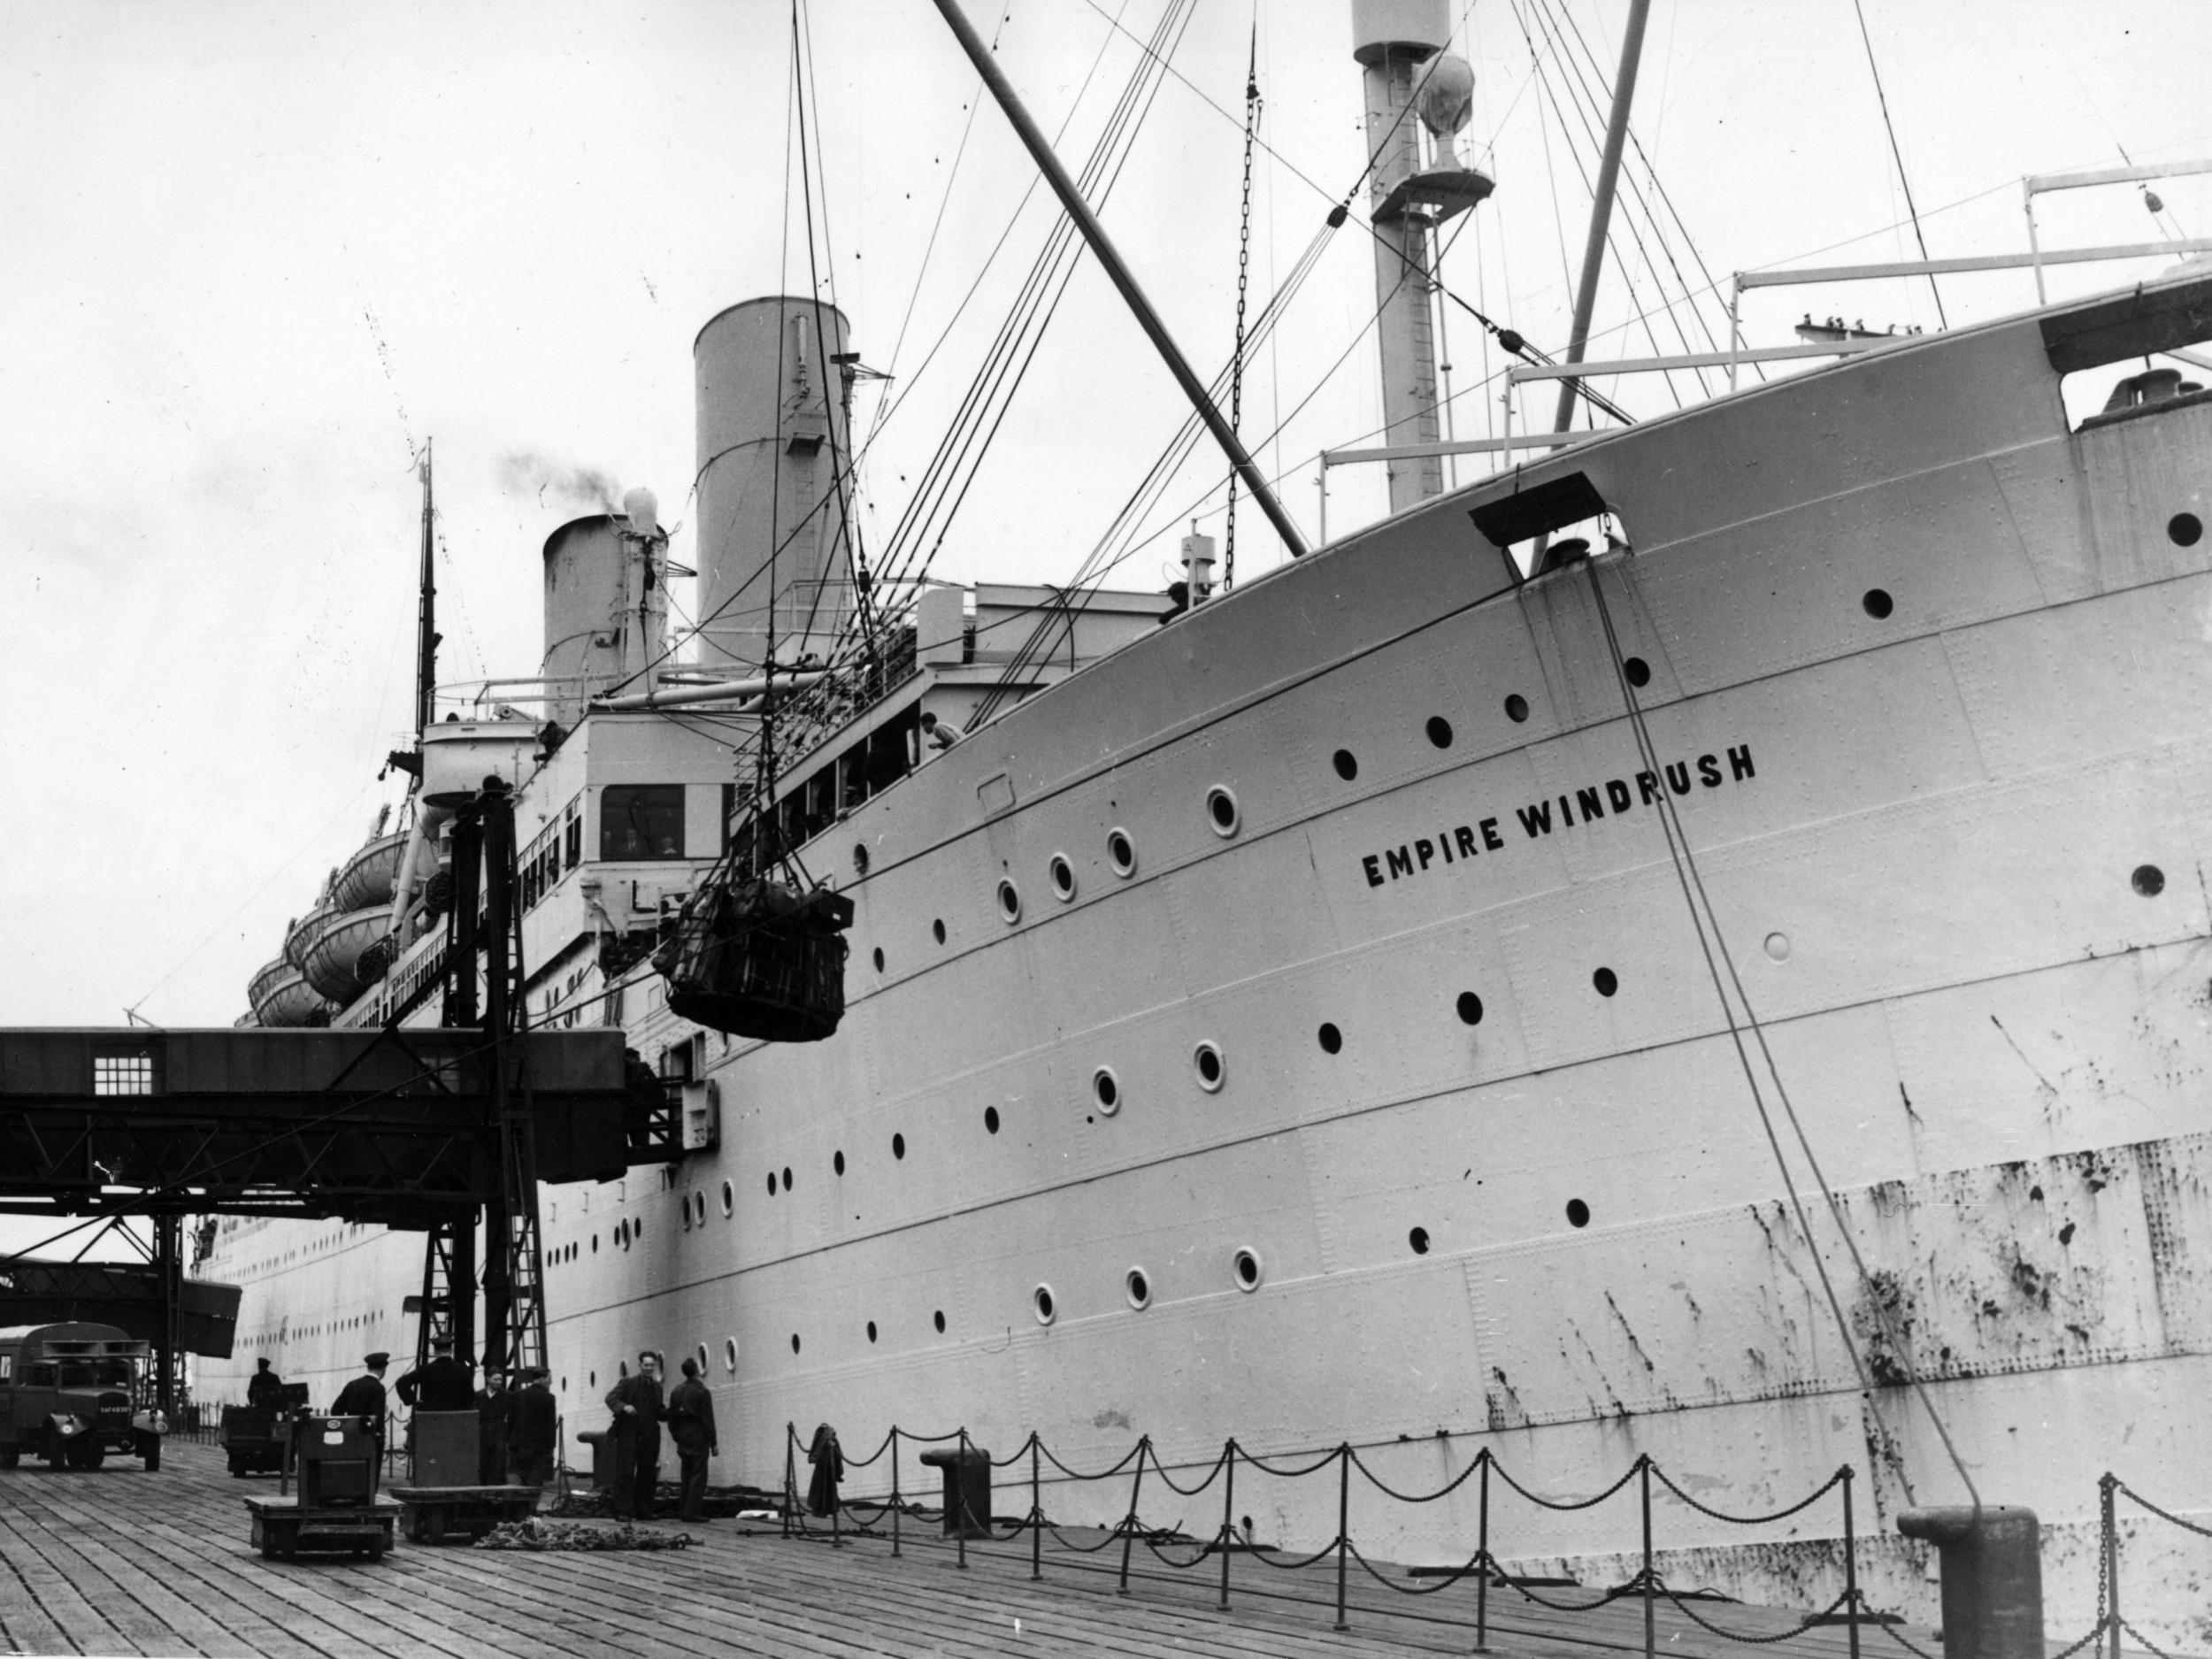 The shame, indignation and sadness caused by the Windrush scandal